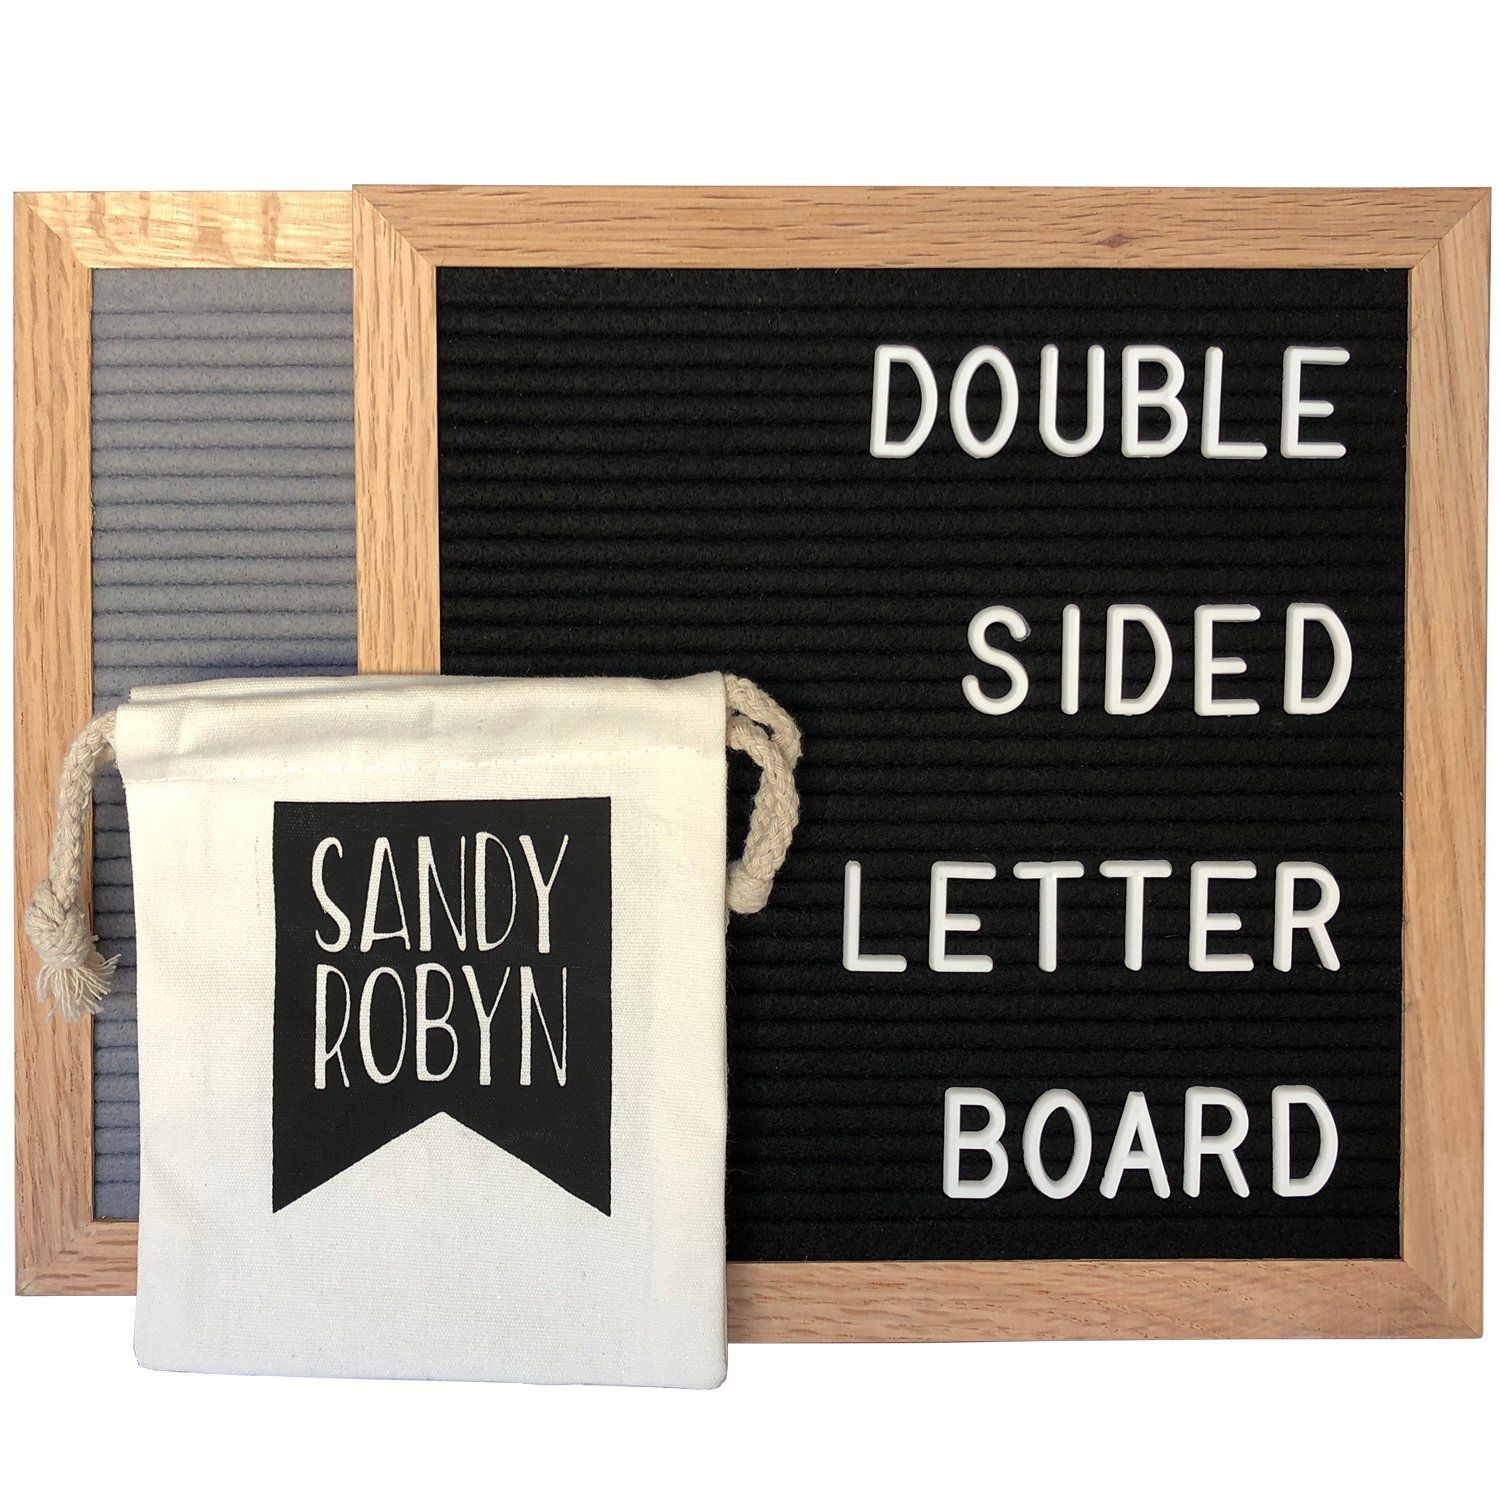 Double Sided Letter Board - 614 Characters 10x10 Black + Gray Felt Sandy Robyn